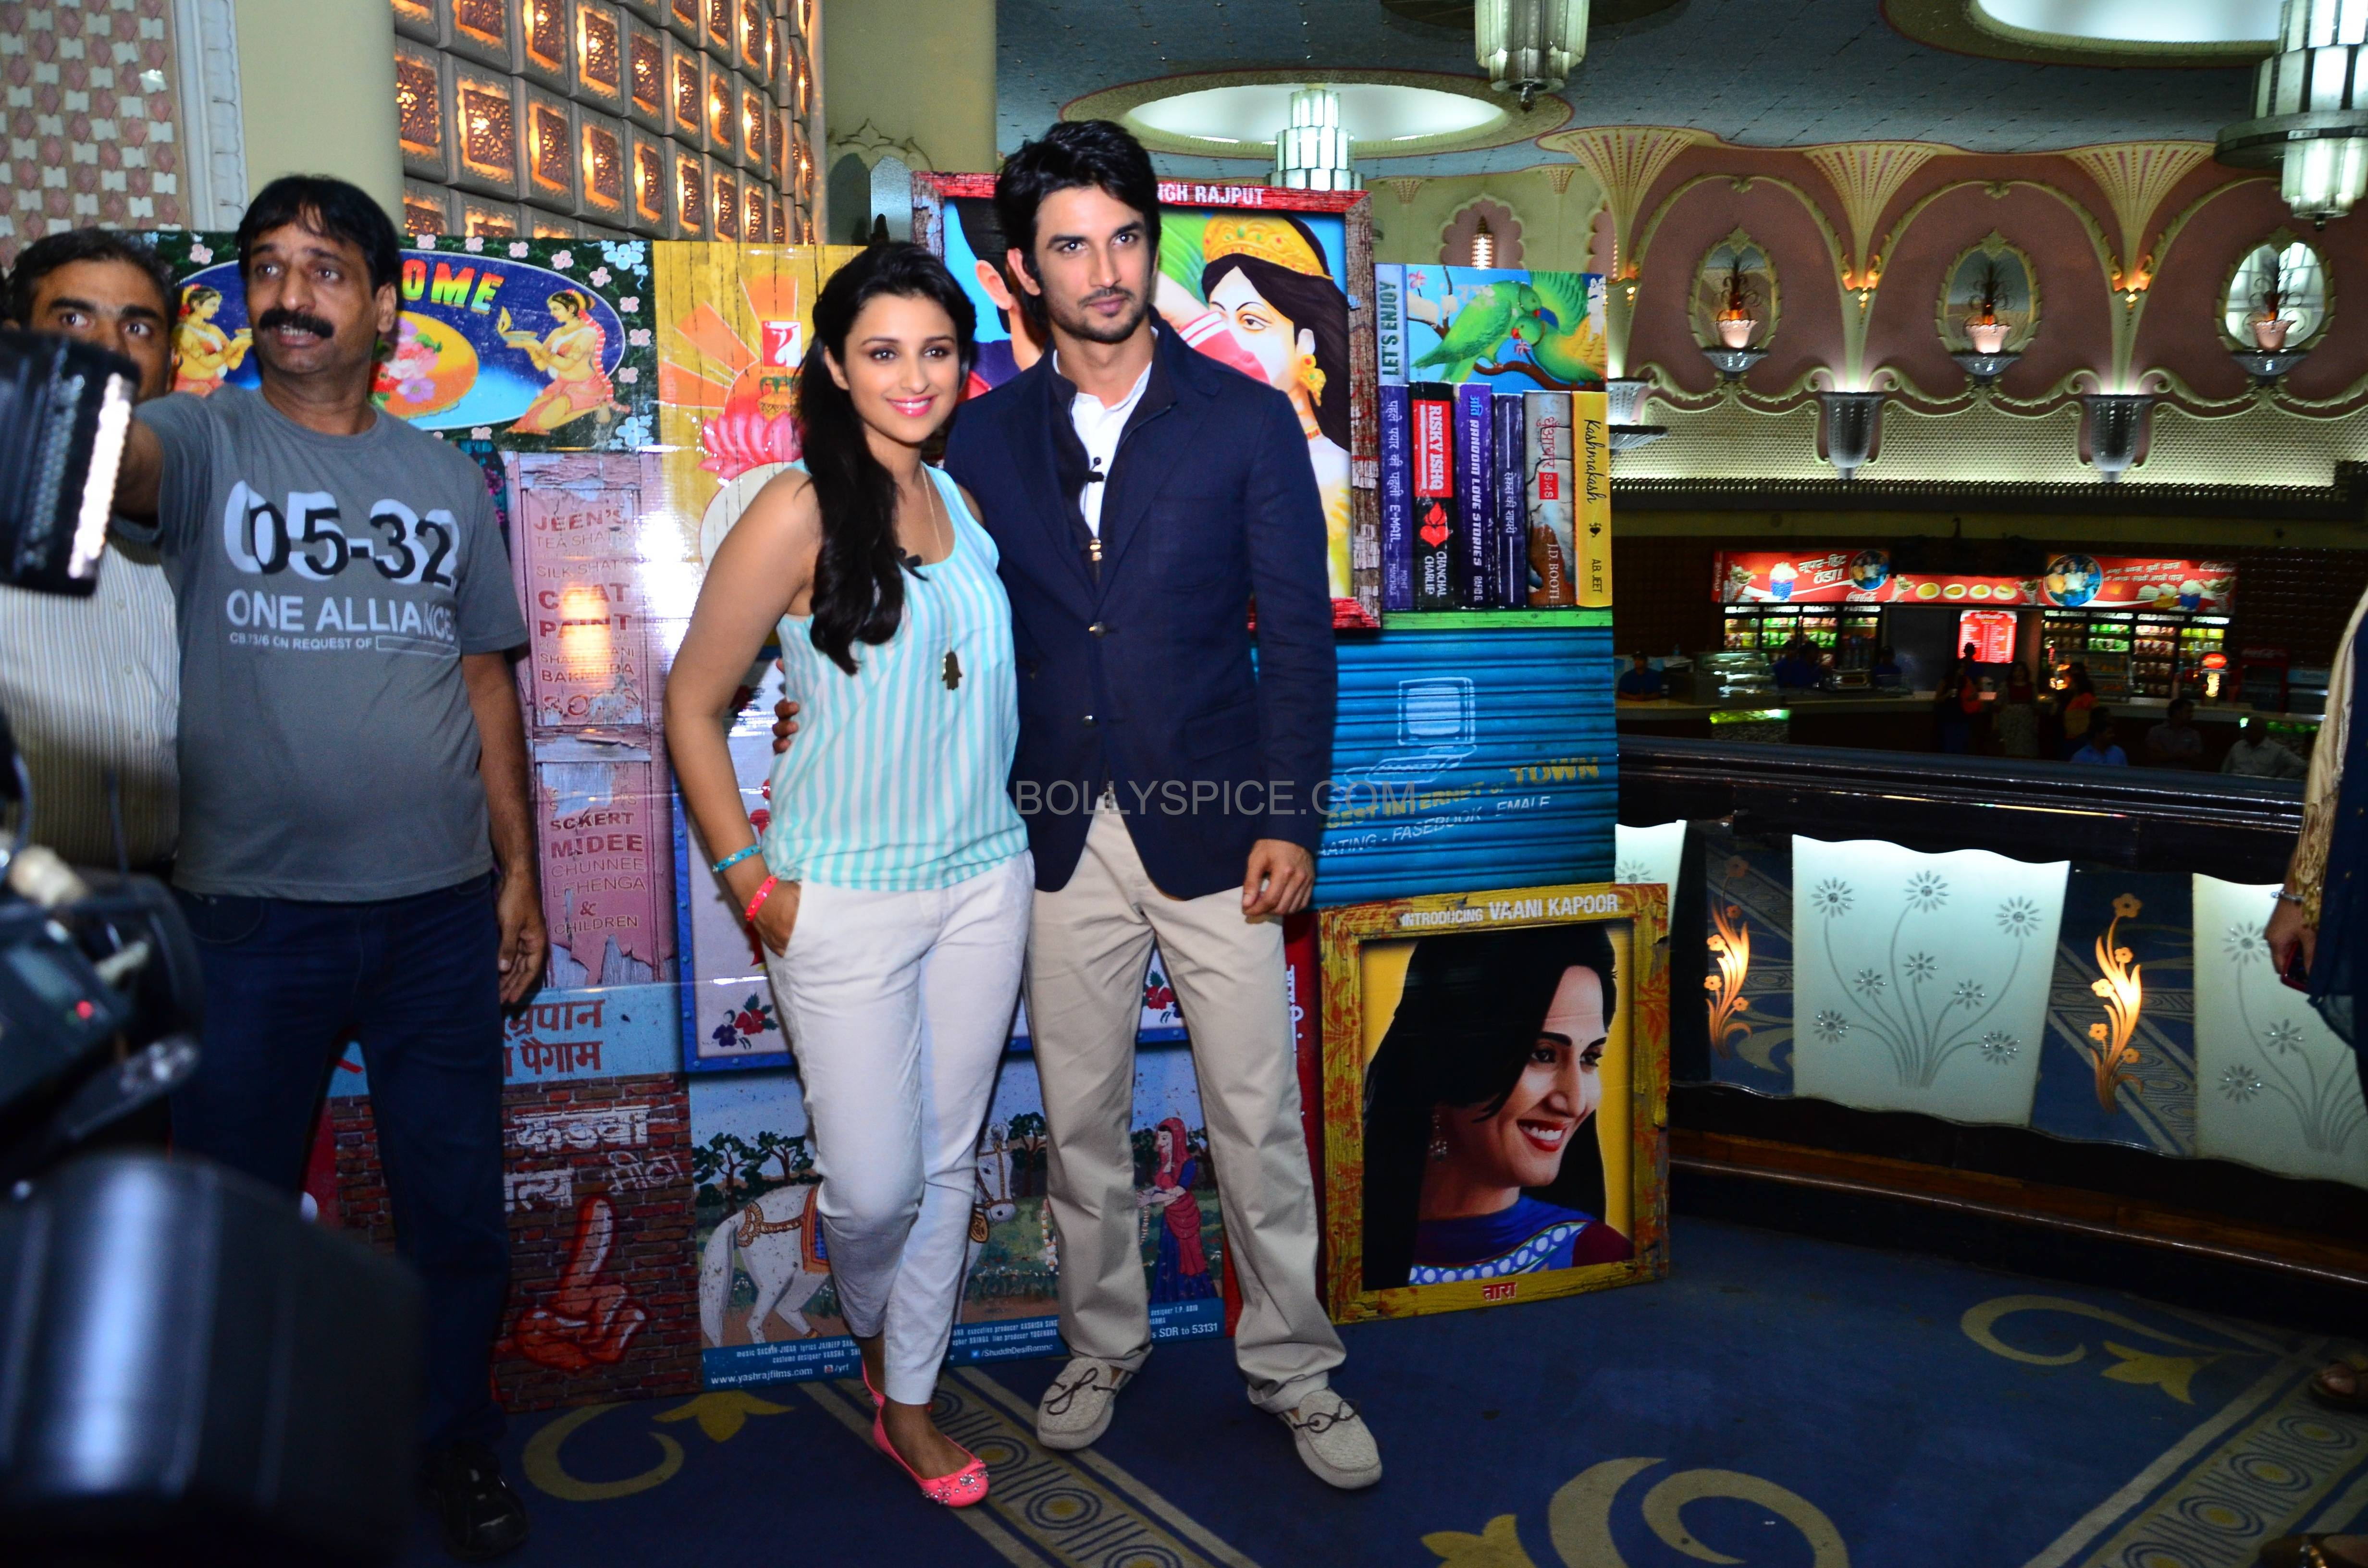 Shuddhdesiromancelaunch03 Event: Trailer Launch of Shuddh Desi Romance